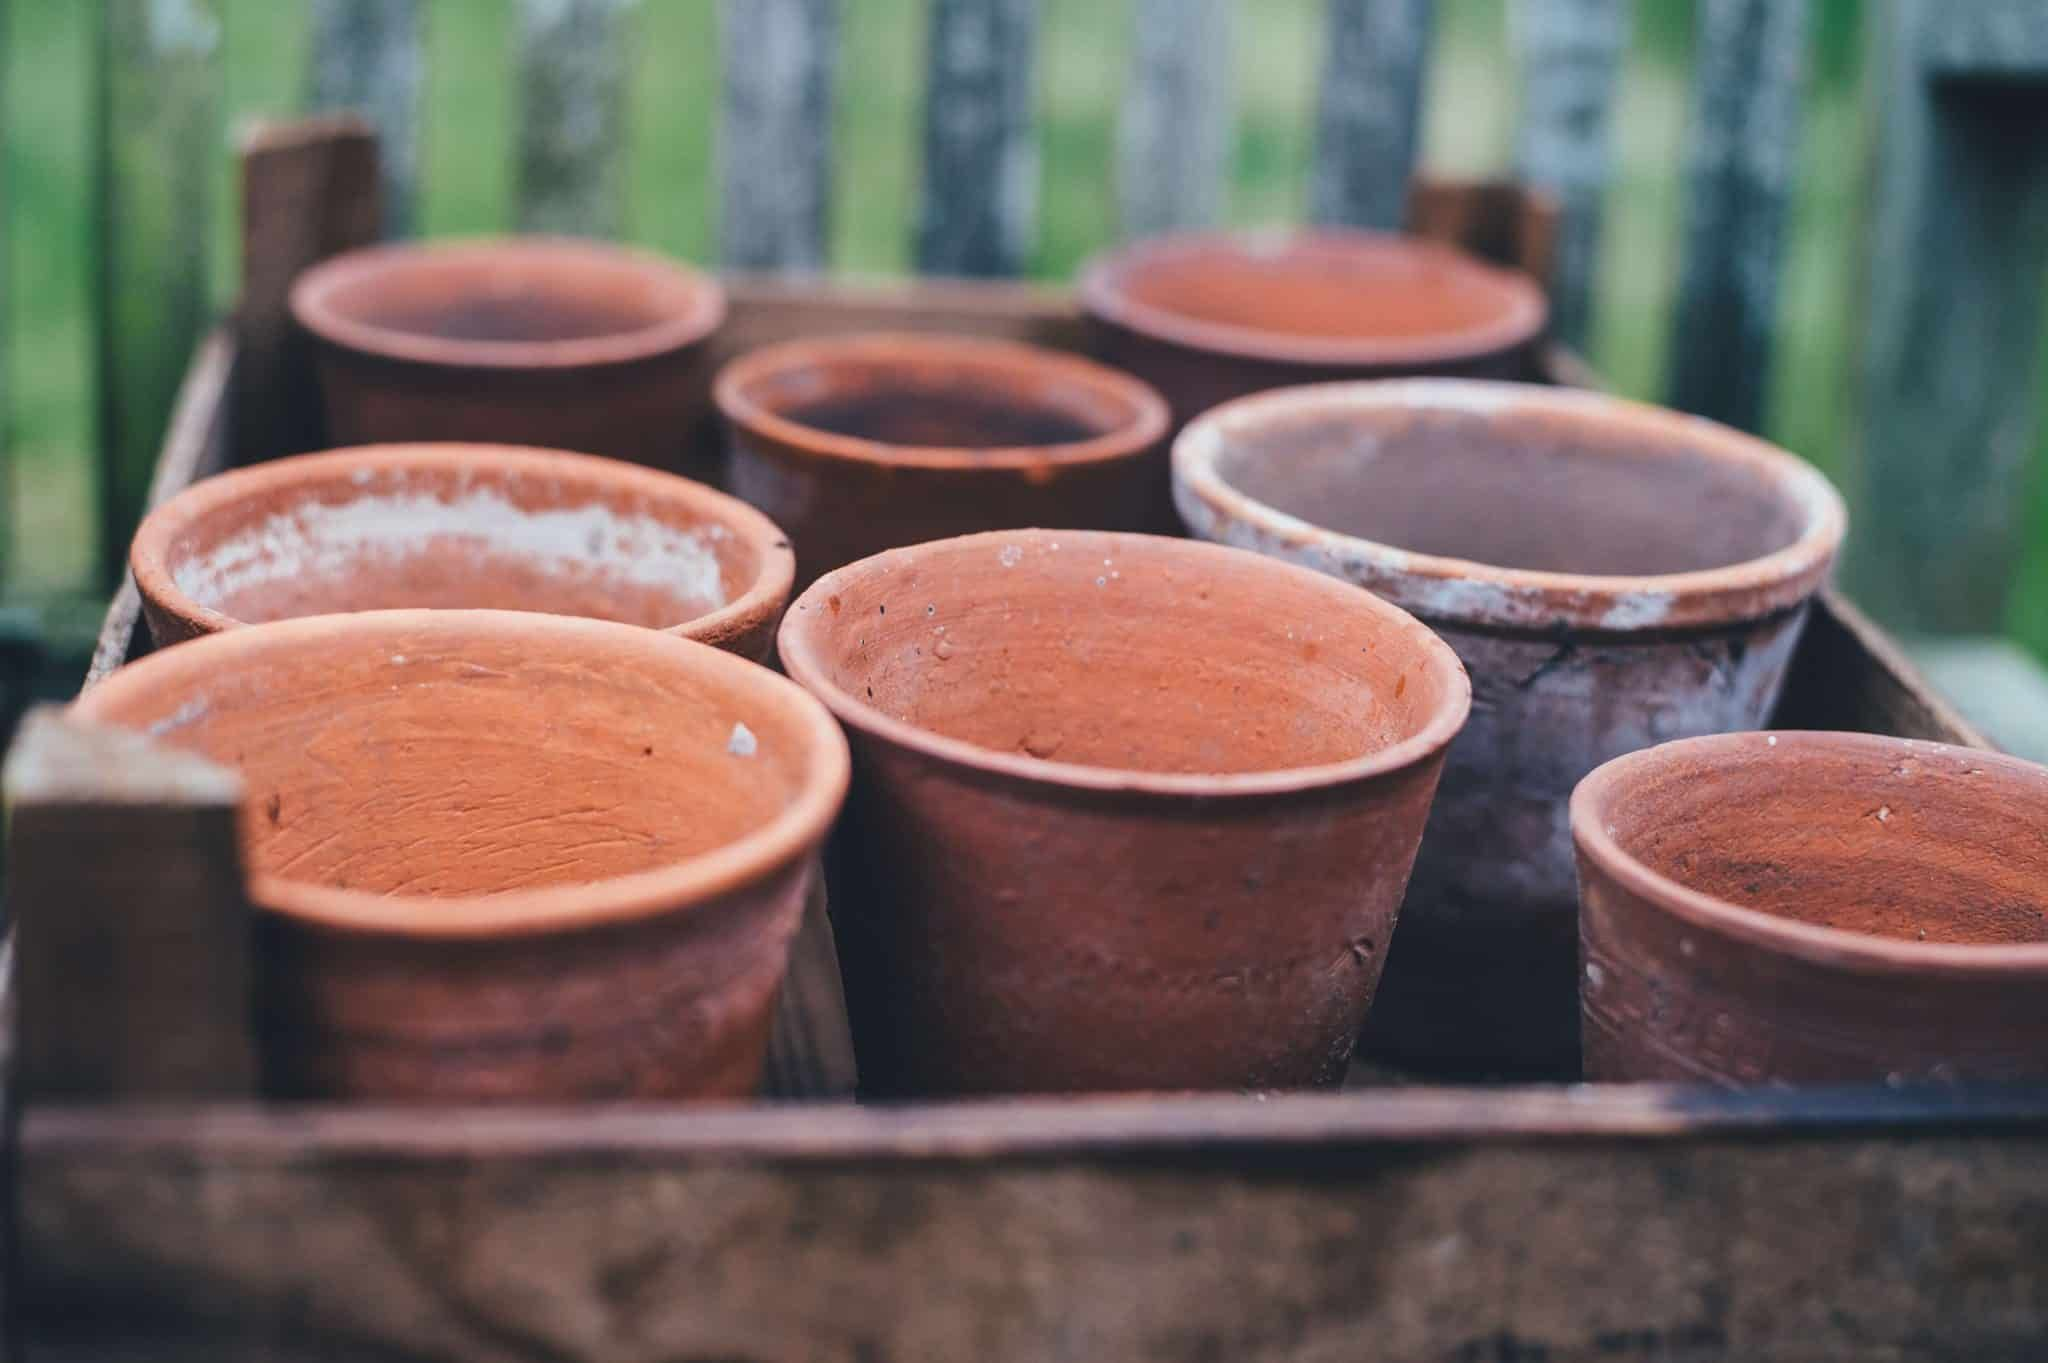 The Complete Guide To Growing Strawberries in Containers #growingstrawberriesincontainers Growing strawberries in pots is an easy way to enjoy fresh fruit even if you don't have a large yard. Read on and learn with complete how-to steps for growing strawberries in containers. #growingstrawberriesincontainers